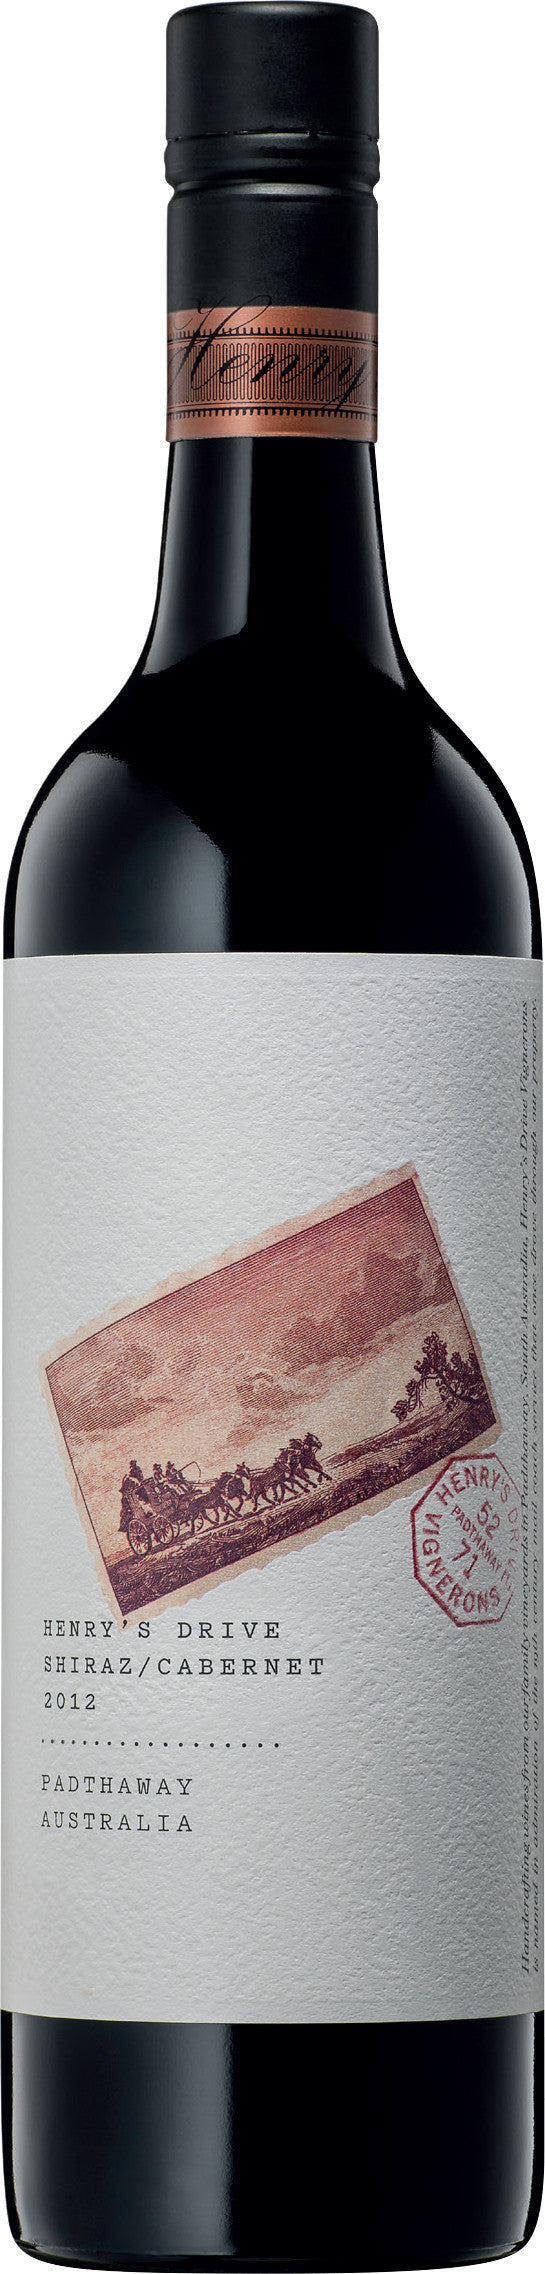 Henry's Drive Shiraz Cabernet 2014 - Network Wines